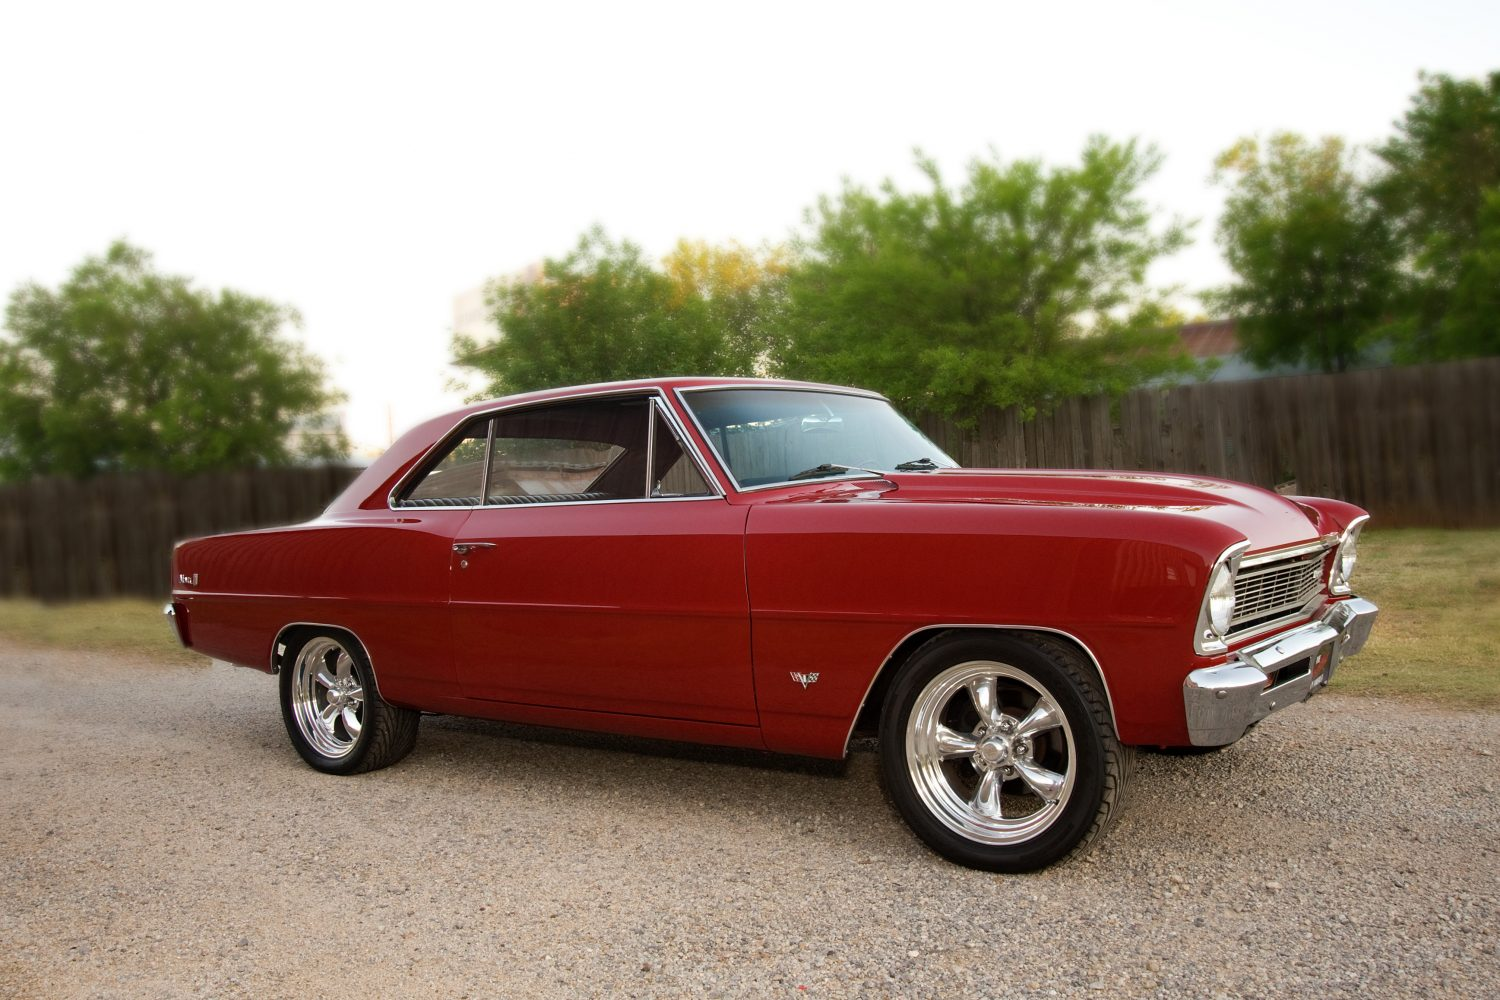 Phoenix Arizona is the Ideal Place to Find a Classic Chevy Muscle Car